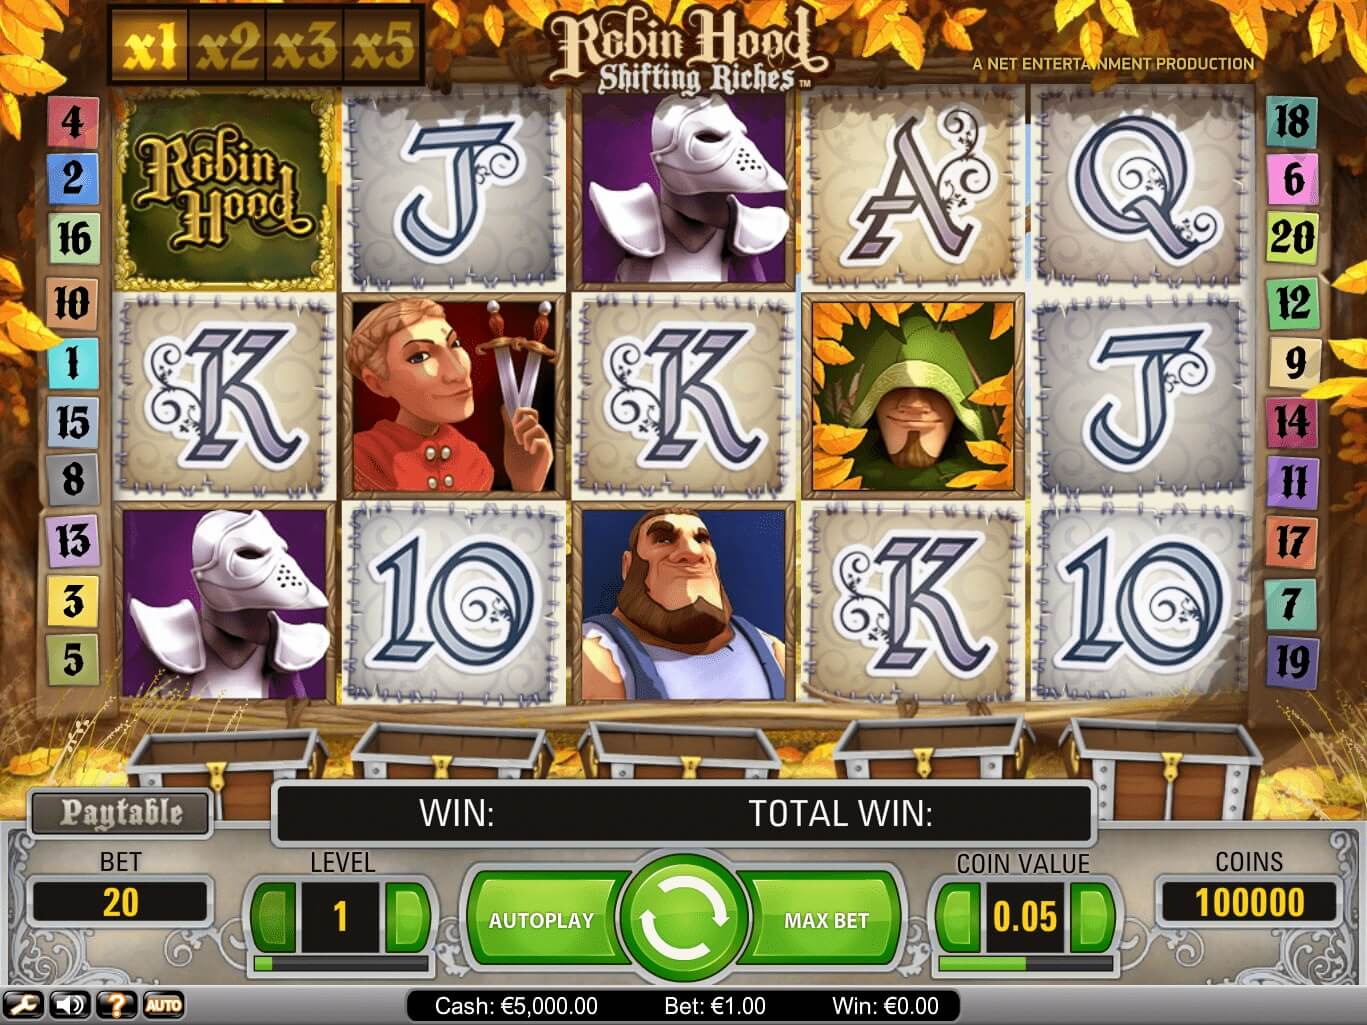 robin hood slot netent shifting riches bonus